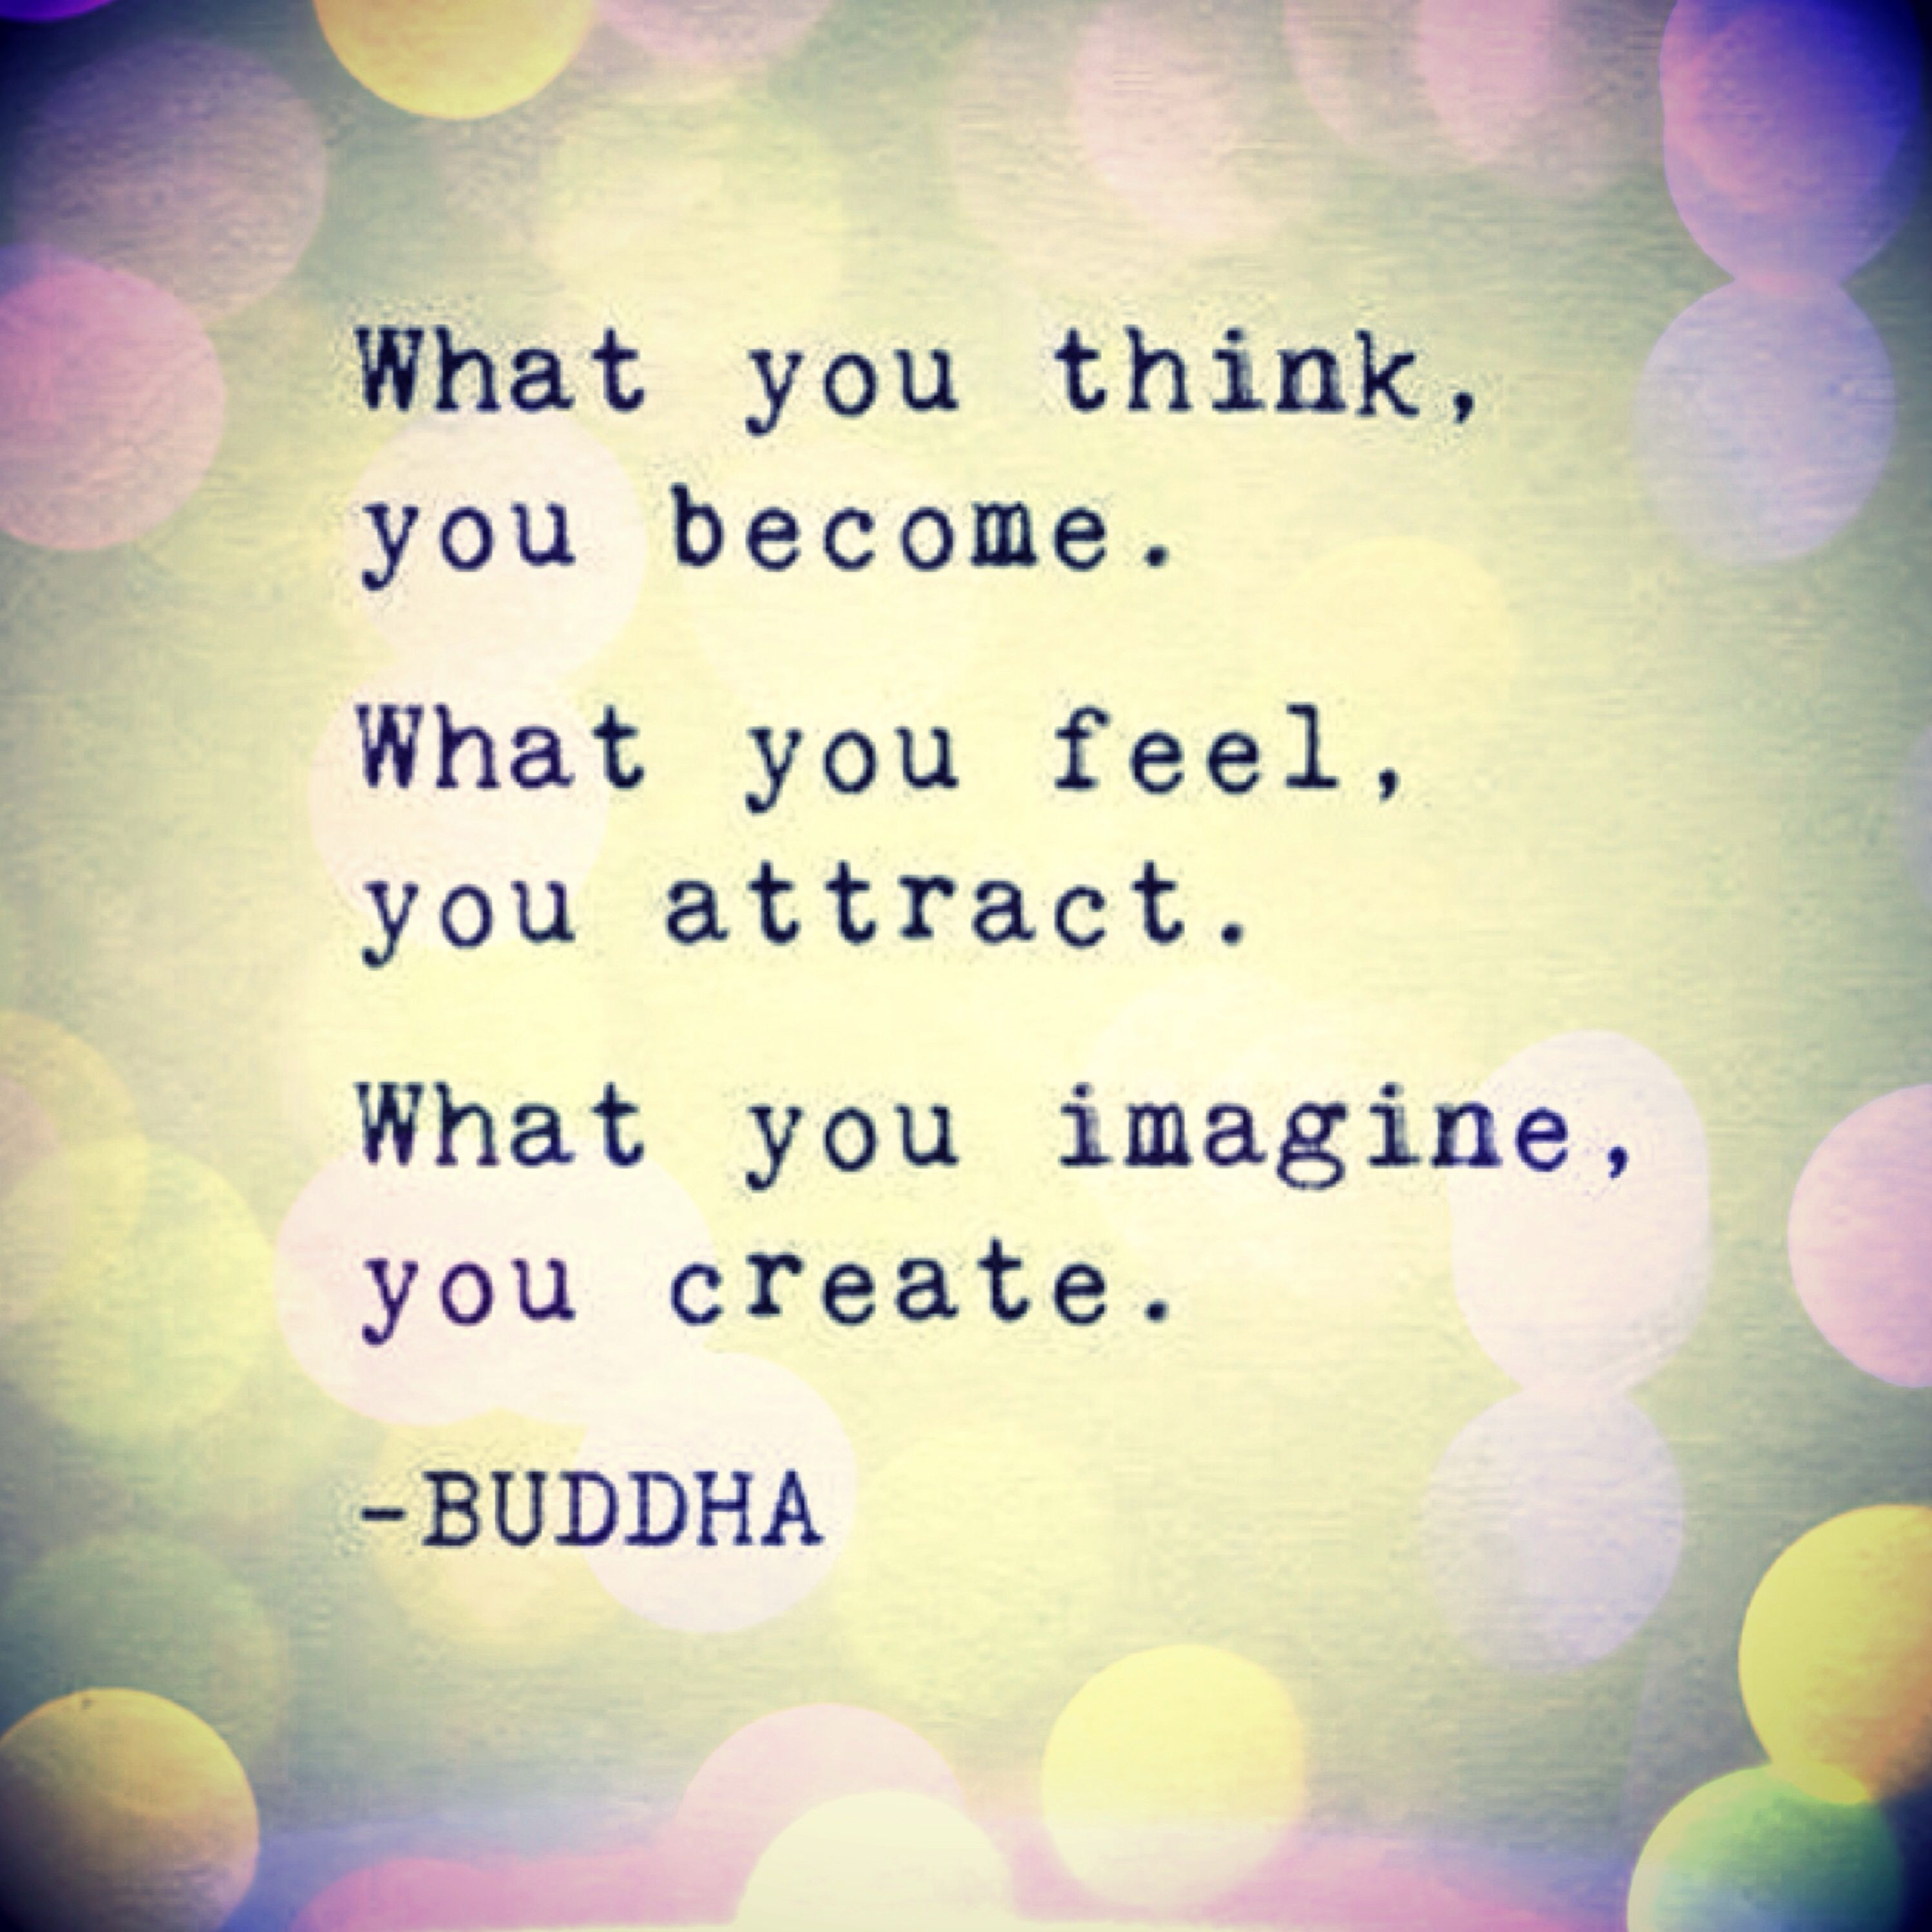 buddha quotes typewriter quotes about new job quotes about pride quotes about memories